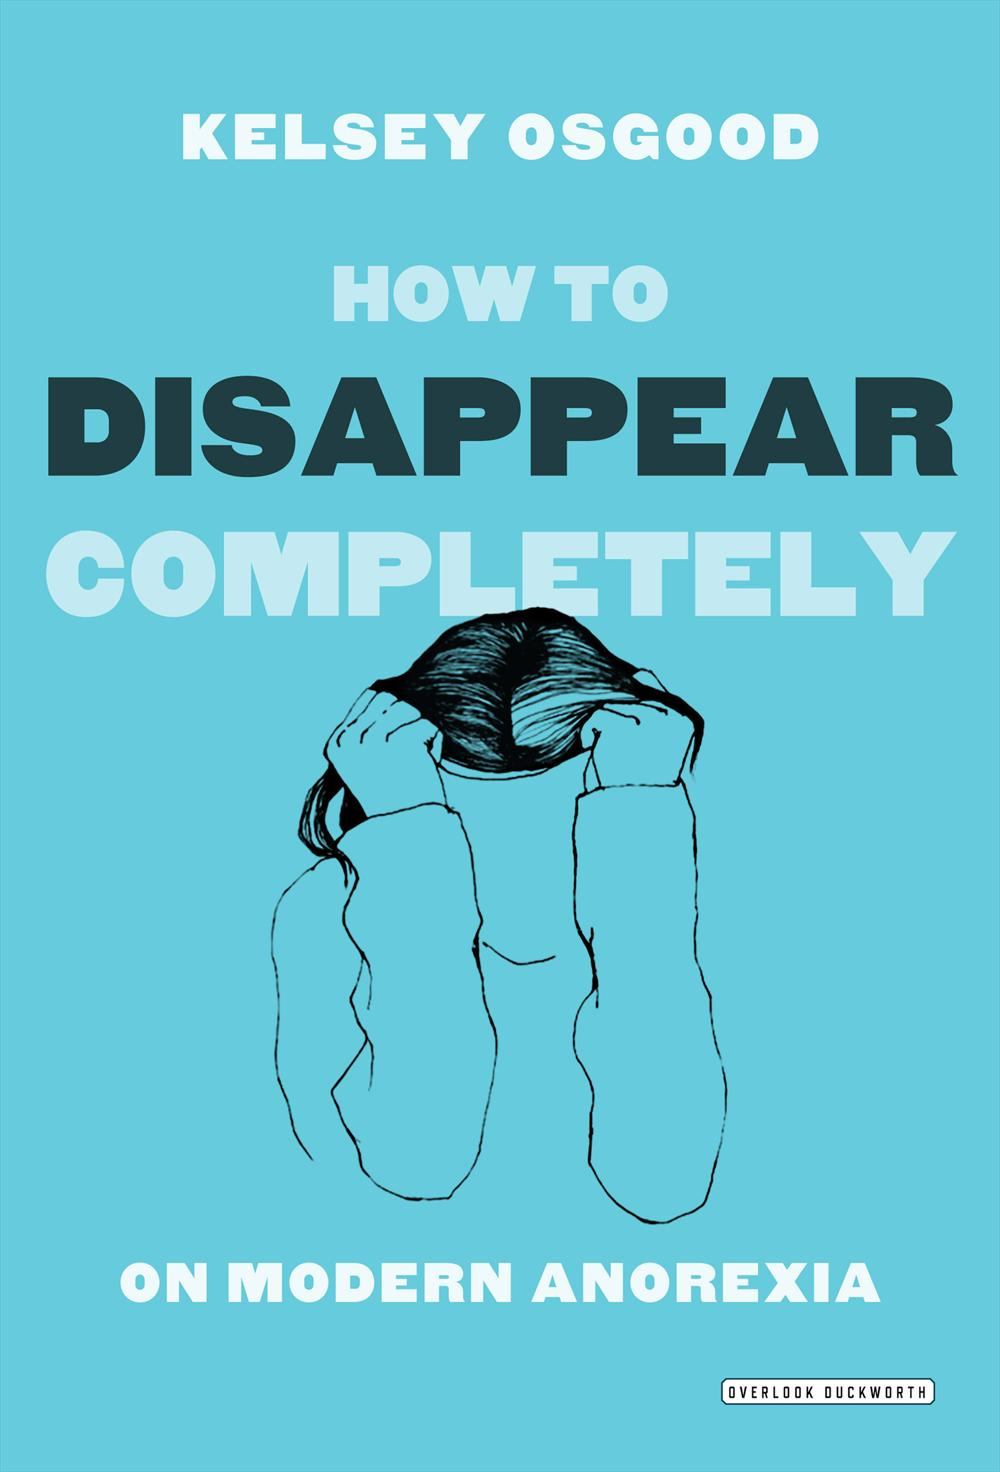 Book Launch: How to Disappear Completely by Kelsey Osgood, with Kate Taylor and Daphne Merkin